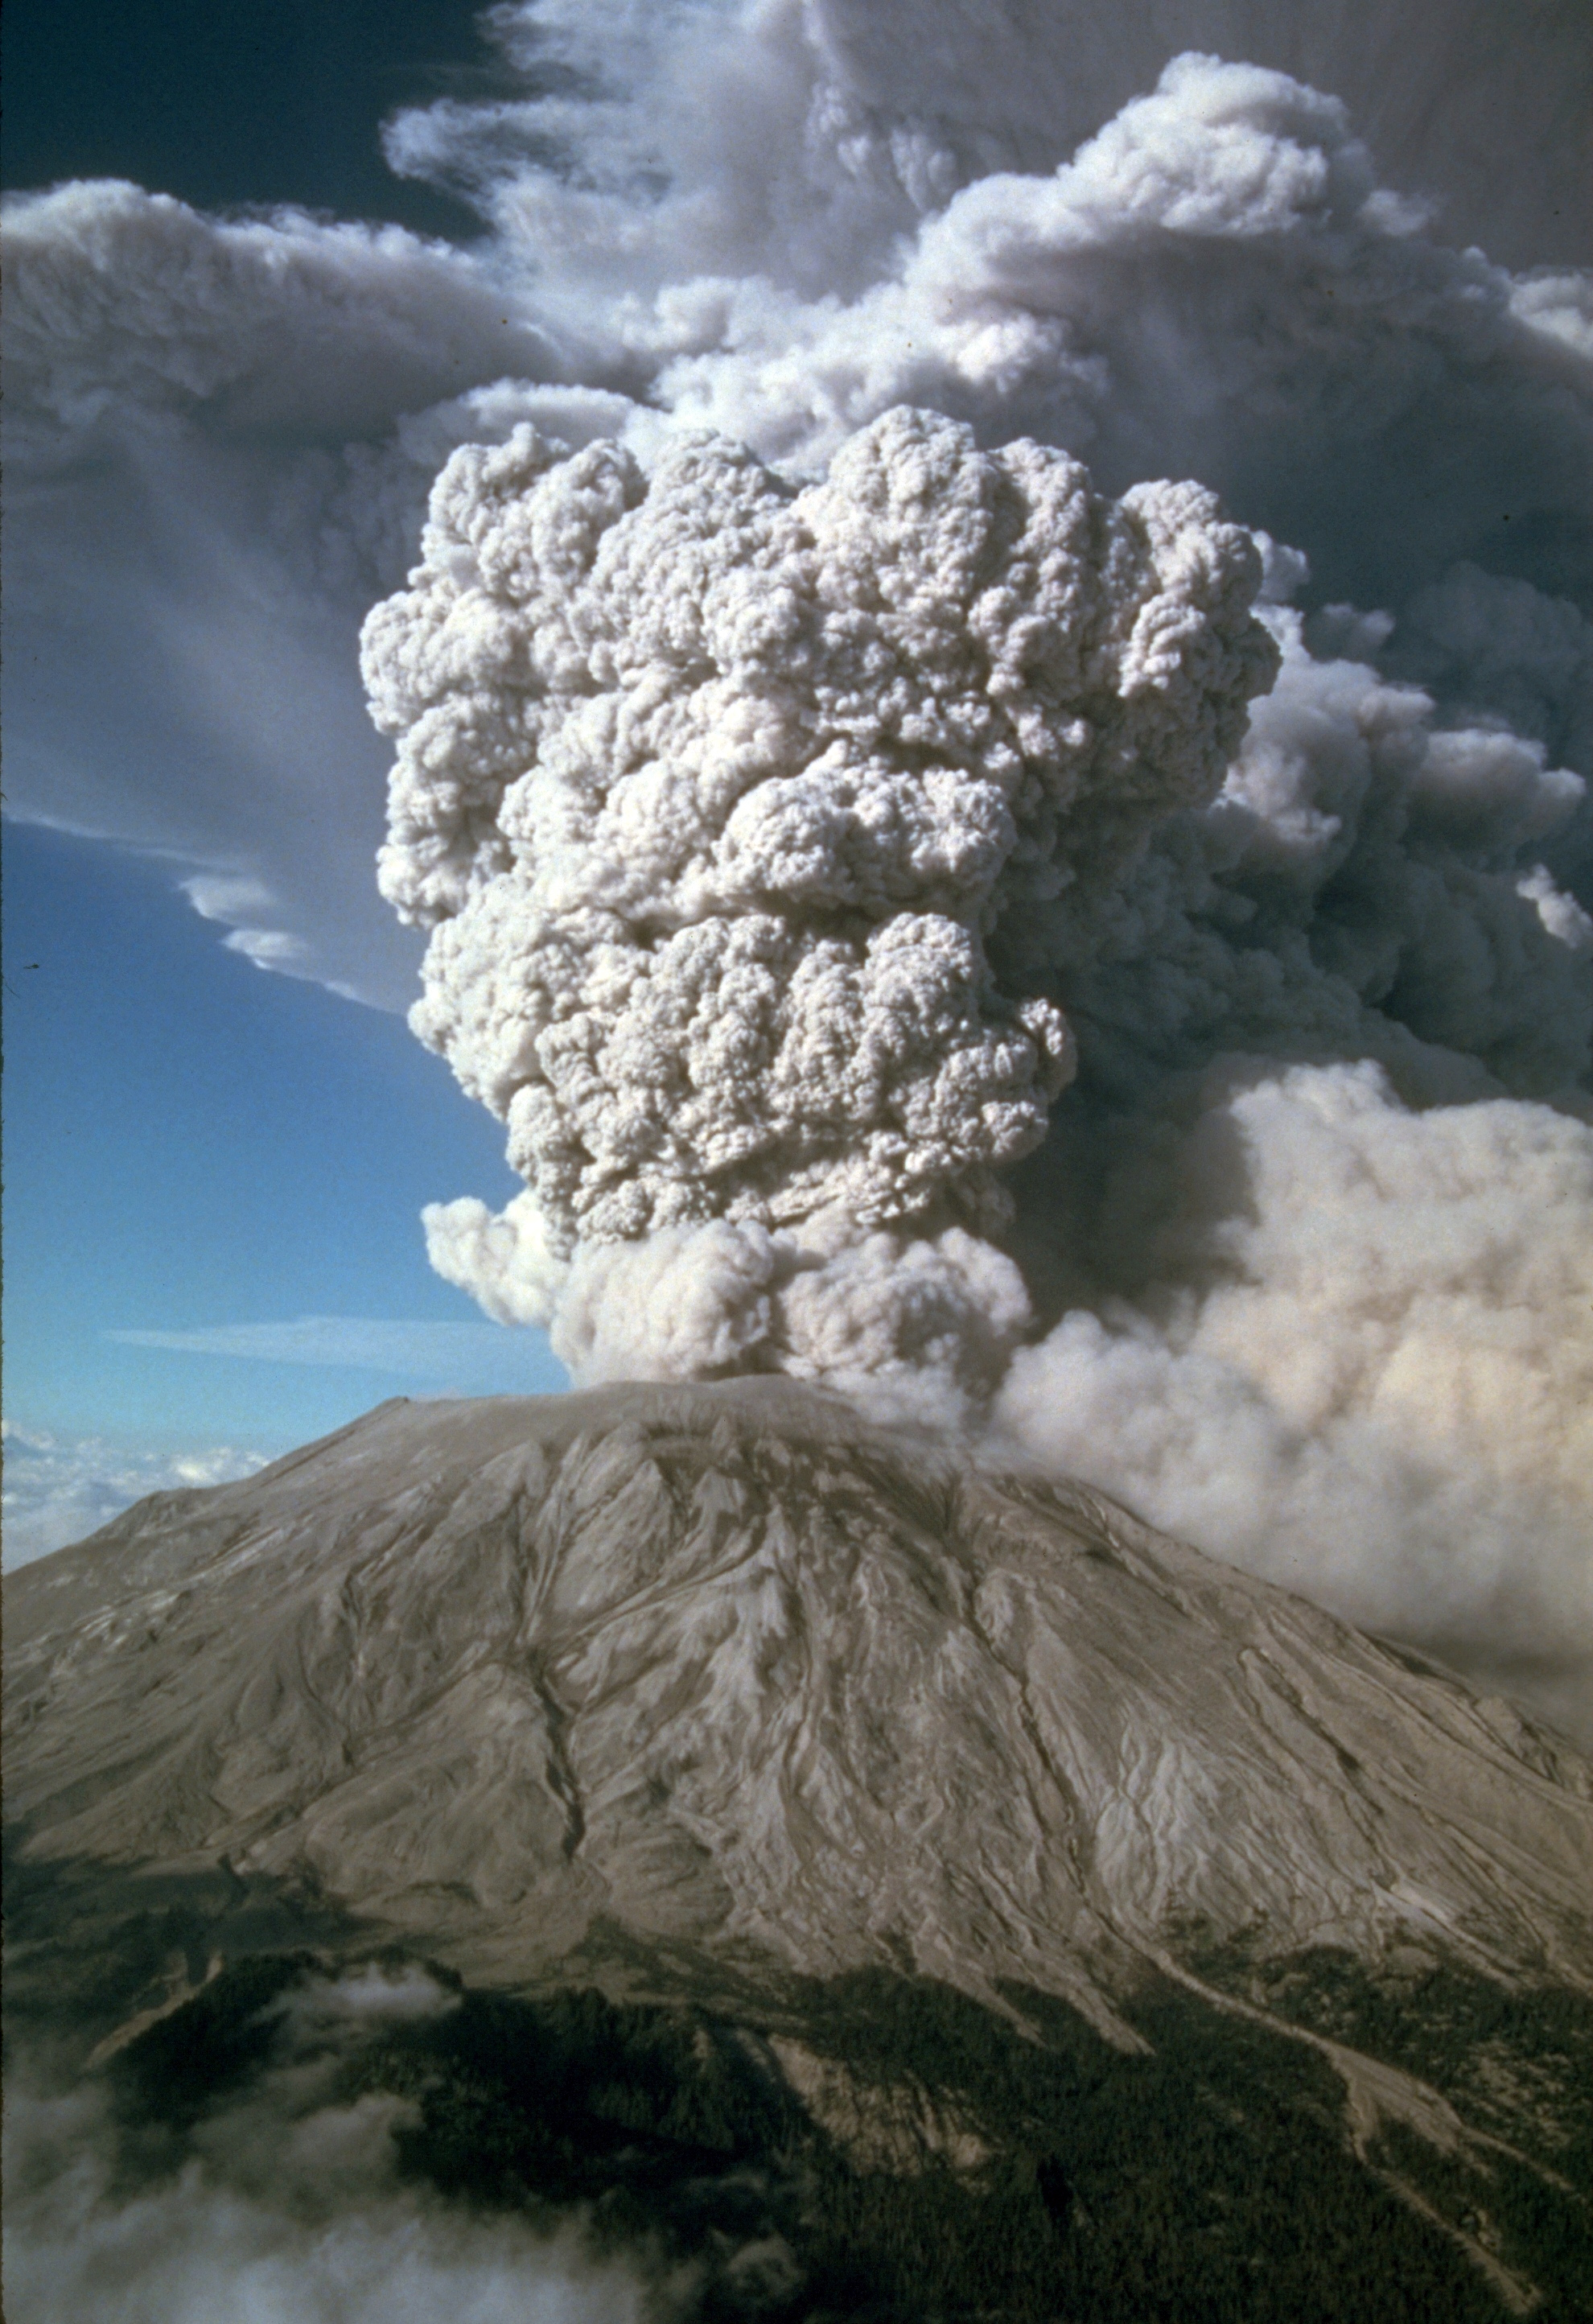 https://upload.wikimedia.org/wikipedia/commons/a/a7/MSH80_st_helens_eruption_plume_07-22-80.jpg